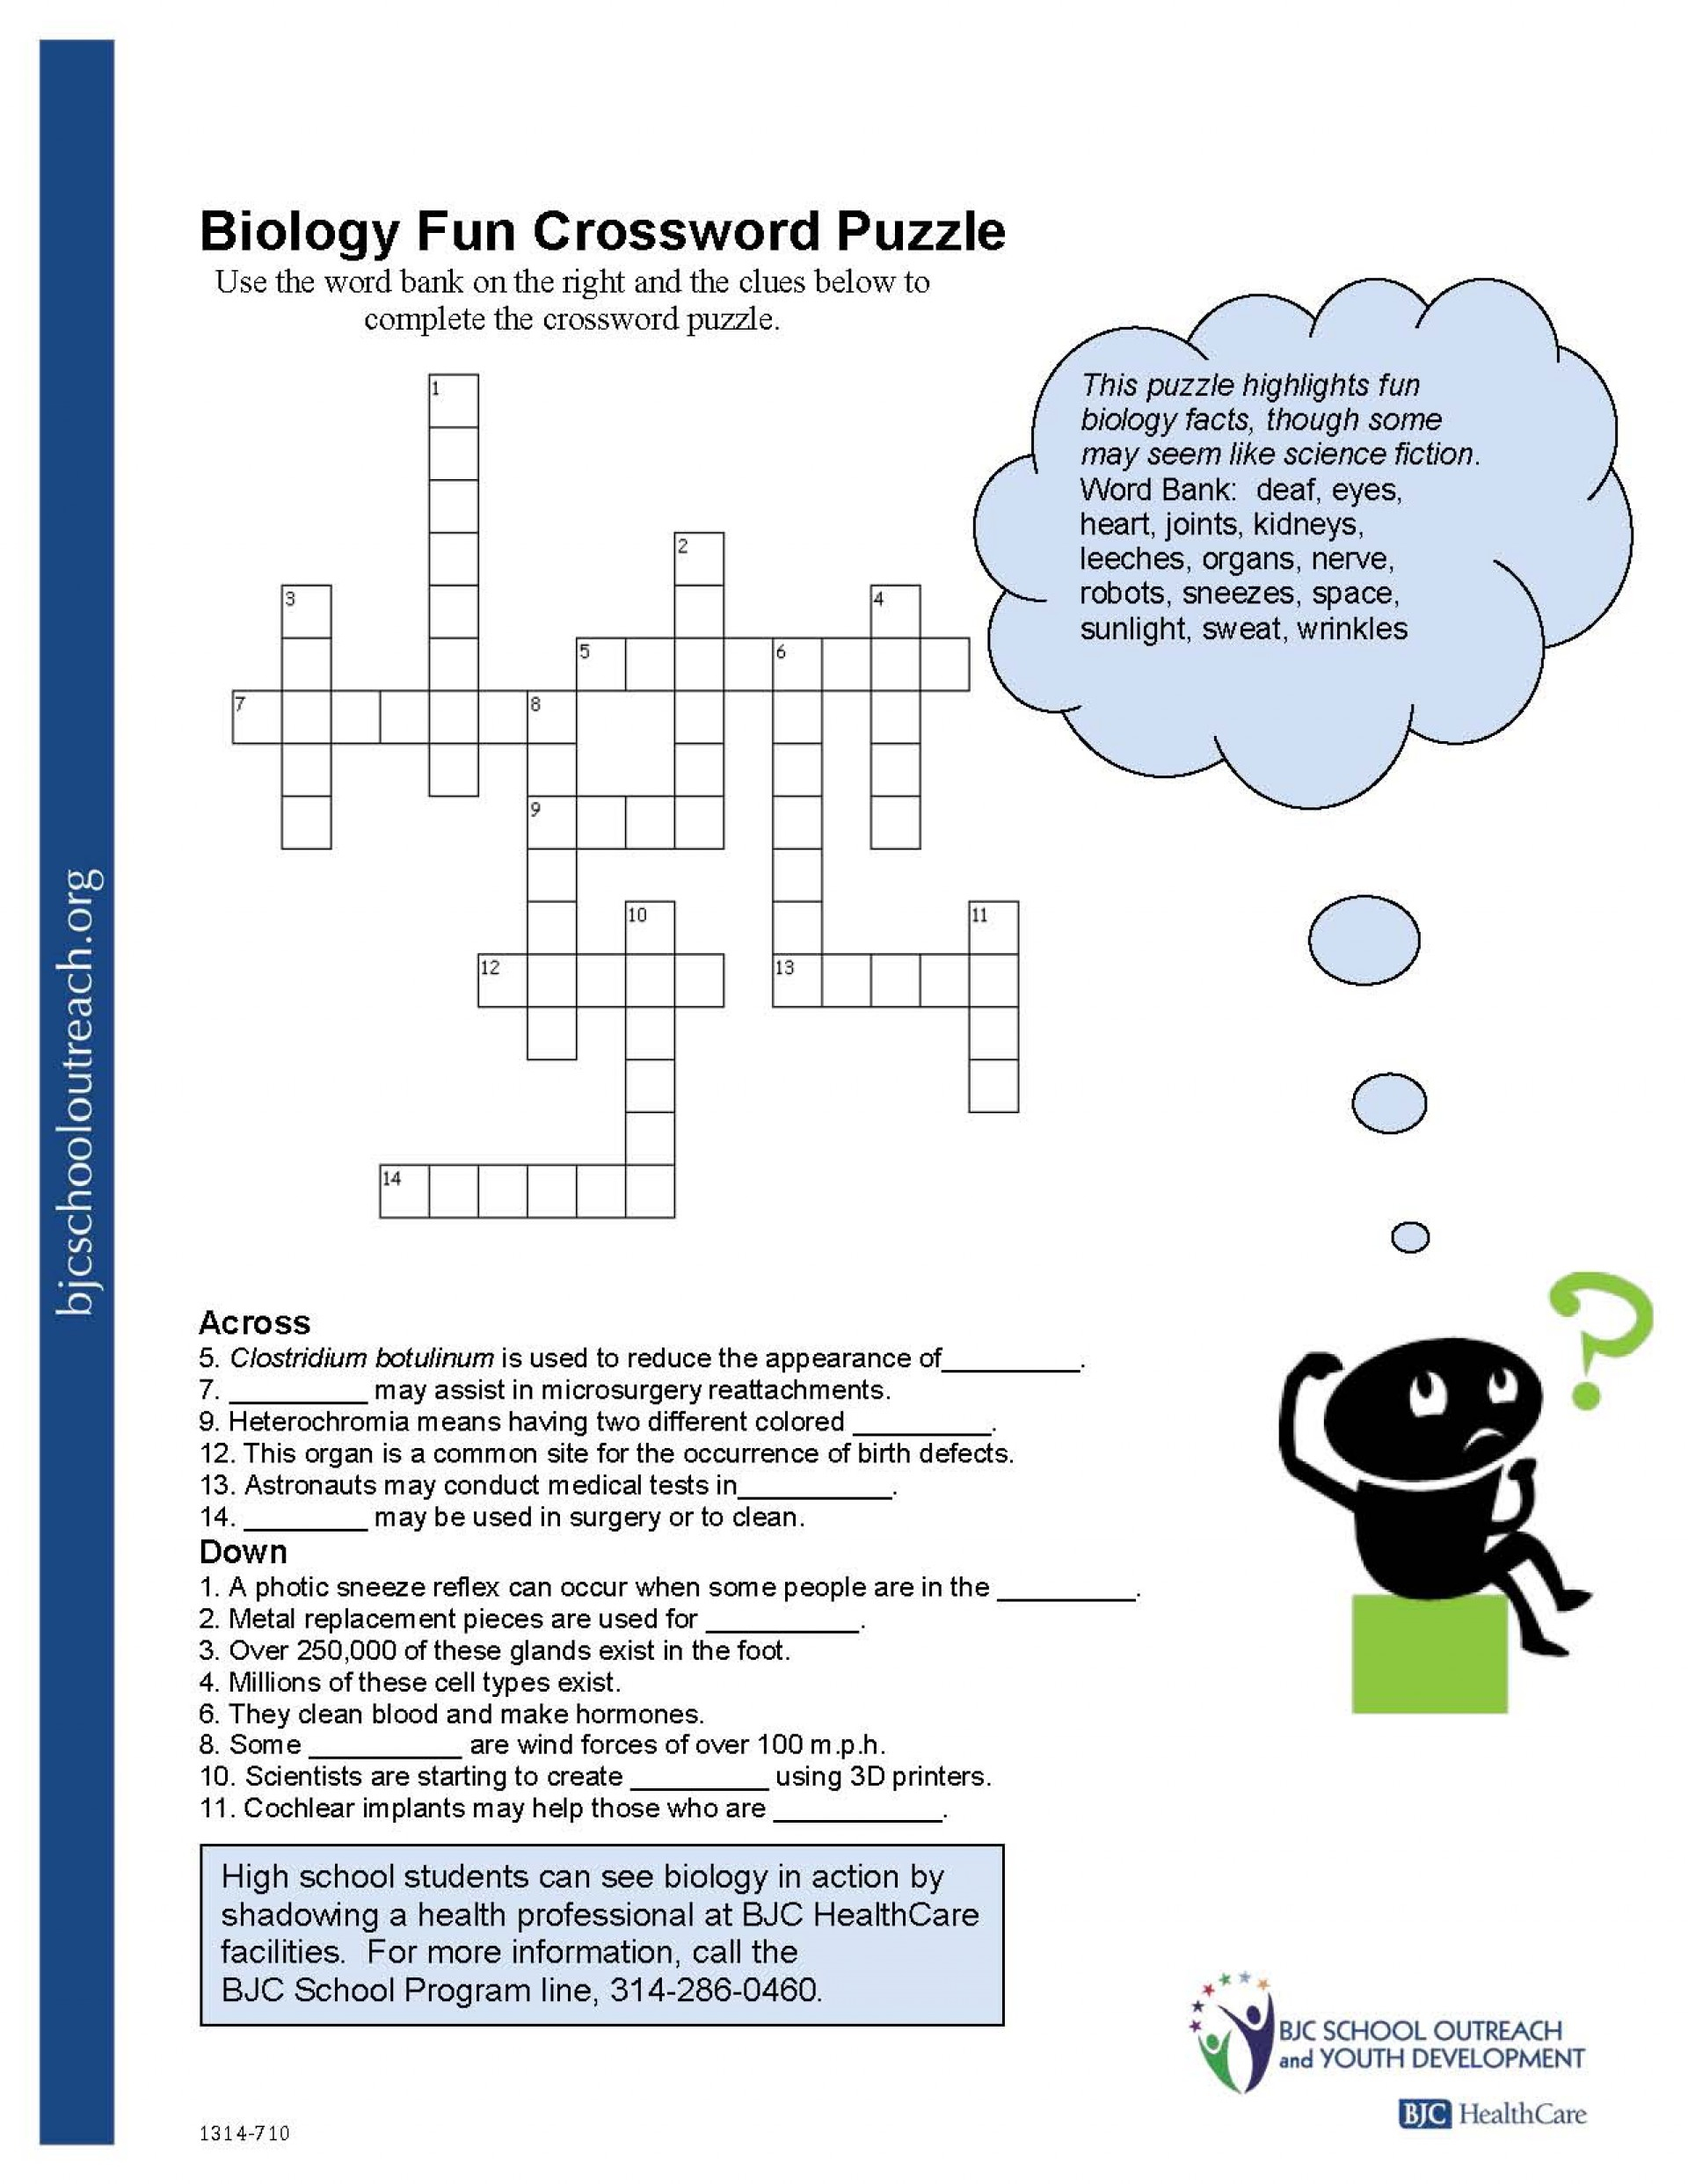 Enjoyable Esl Printable Crossword Puzzle Worksheets With Pictures - Printable Crossword Puzzle With Word Bank